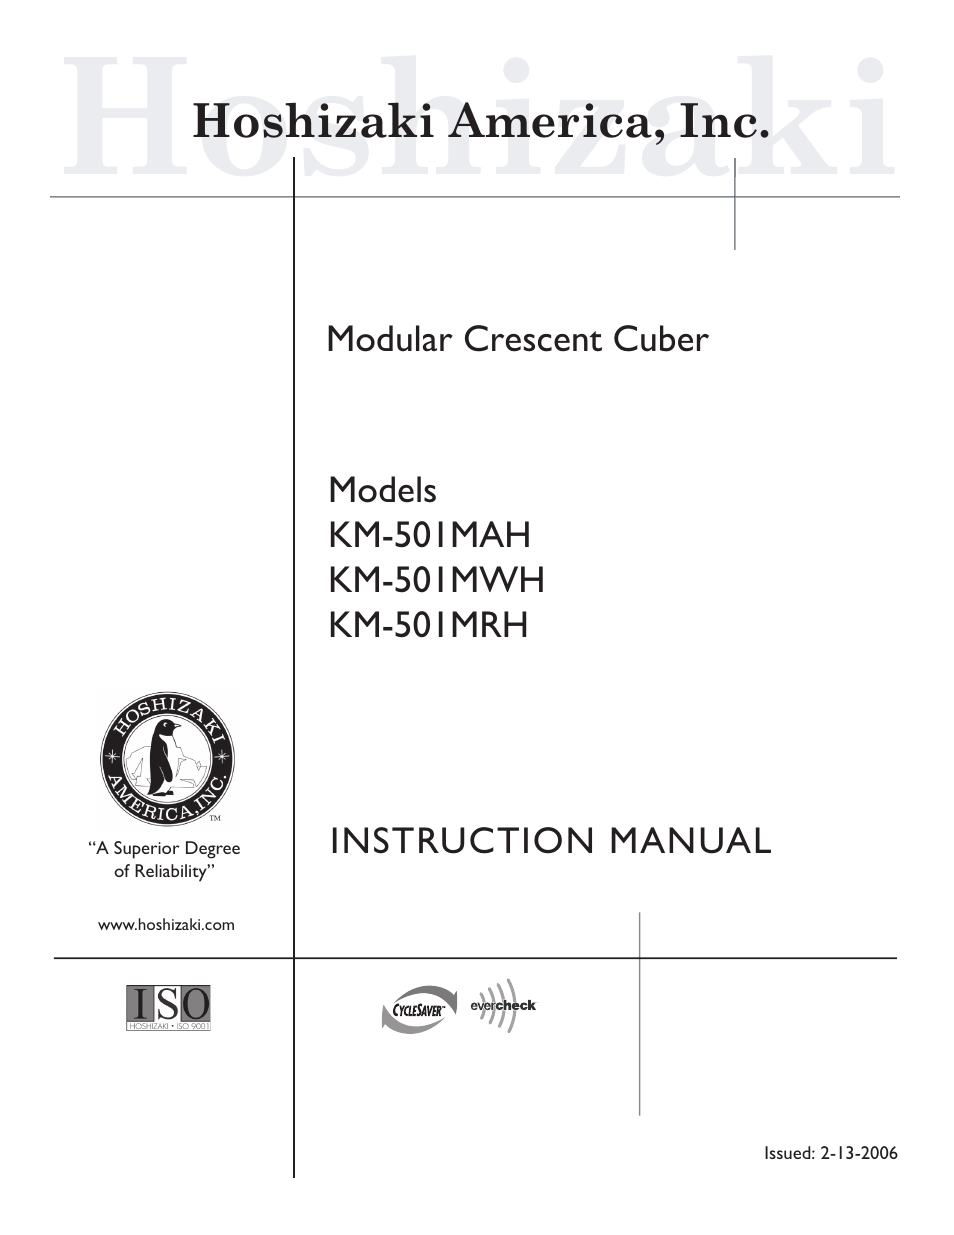 hoshizaki km 501mrh user manual 27 pages also for km 501mwh rh manualsdir com hoshizaki service manual hoshizaki ice machine owner's manual